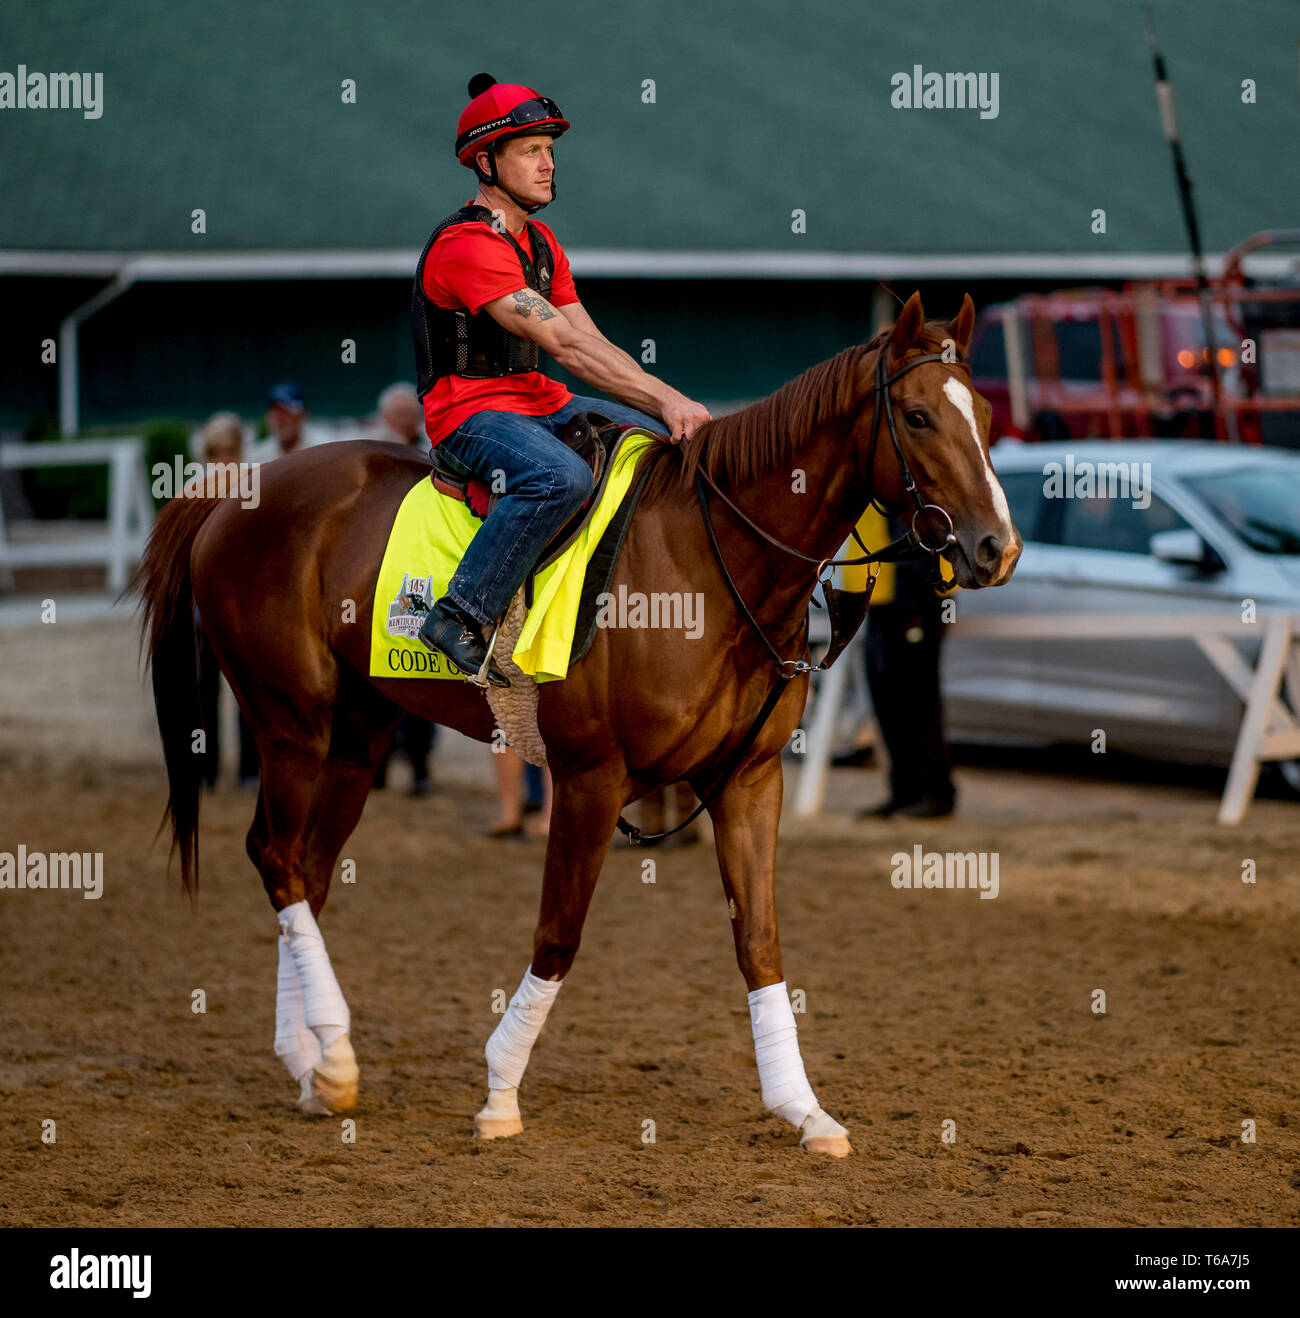 Code Of Honor Stock Photos & Code Of Honor Stock Images - Alamy